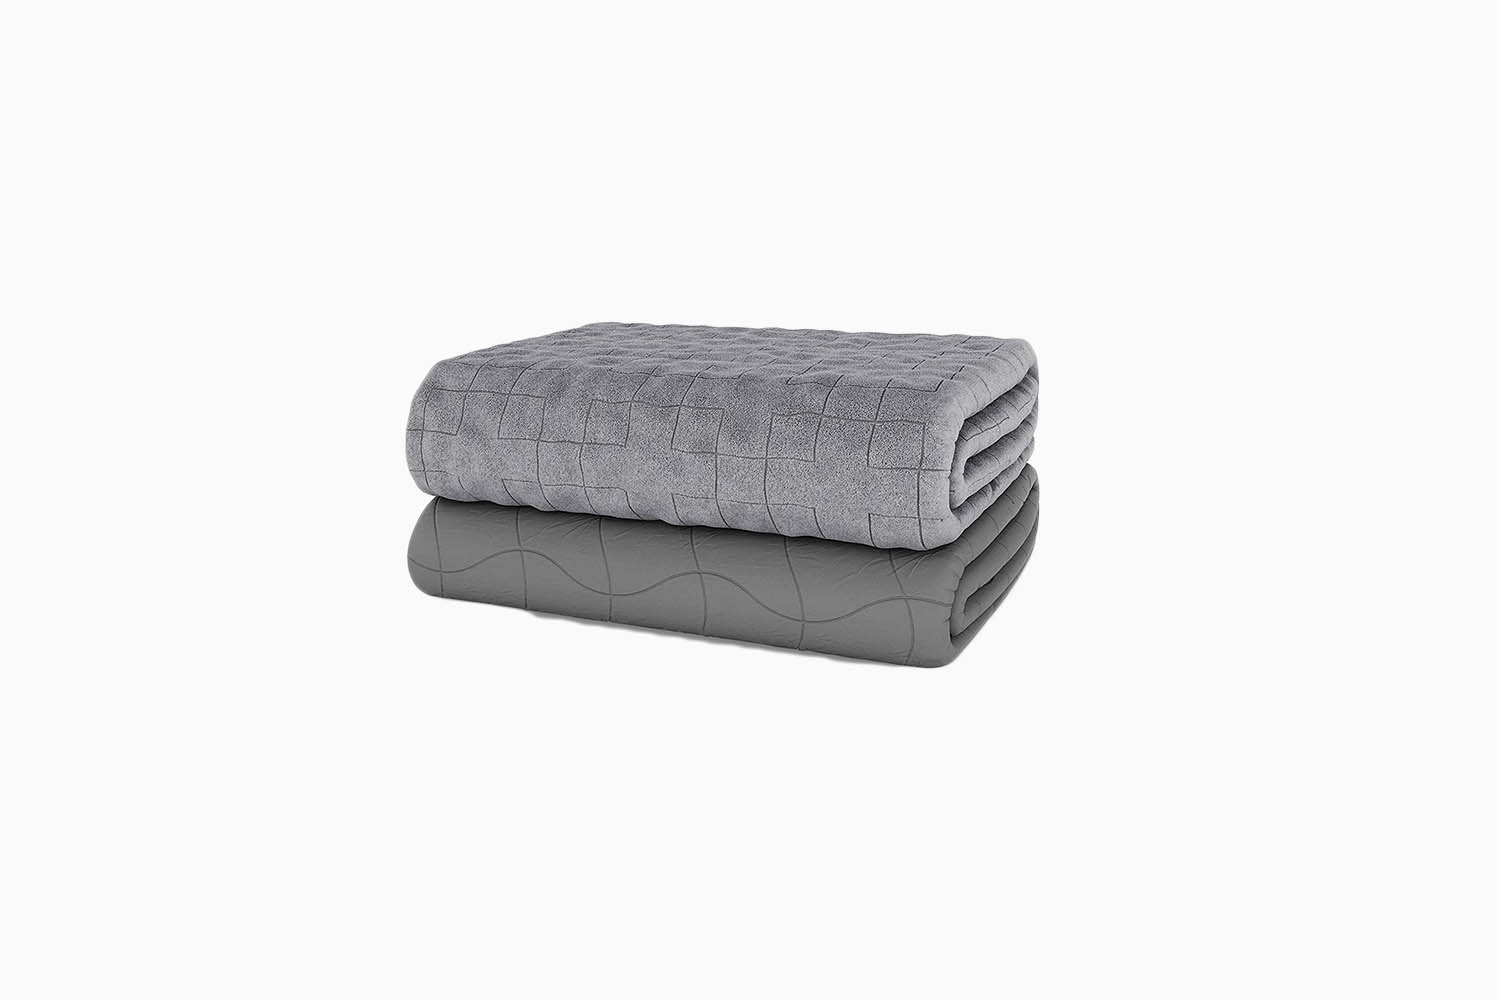 Best Weighted Blankets Dr Harts Review - Luxe Digital